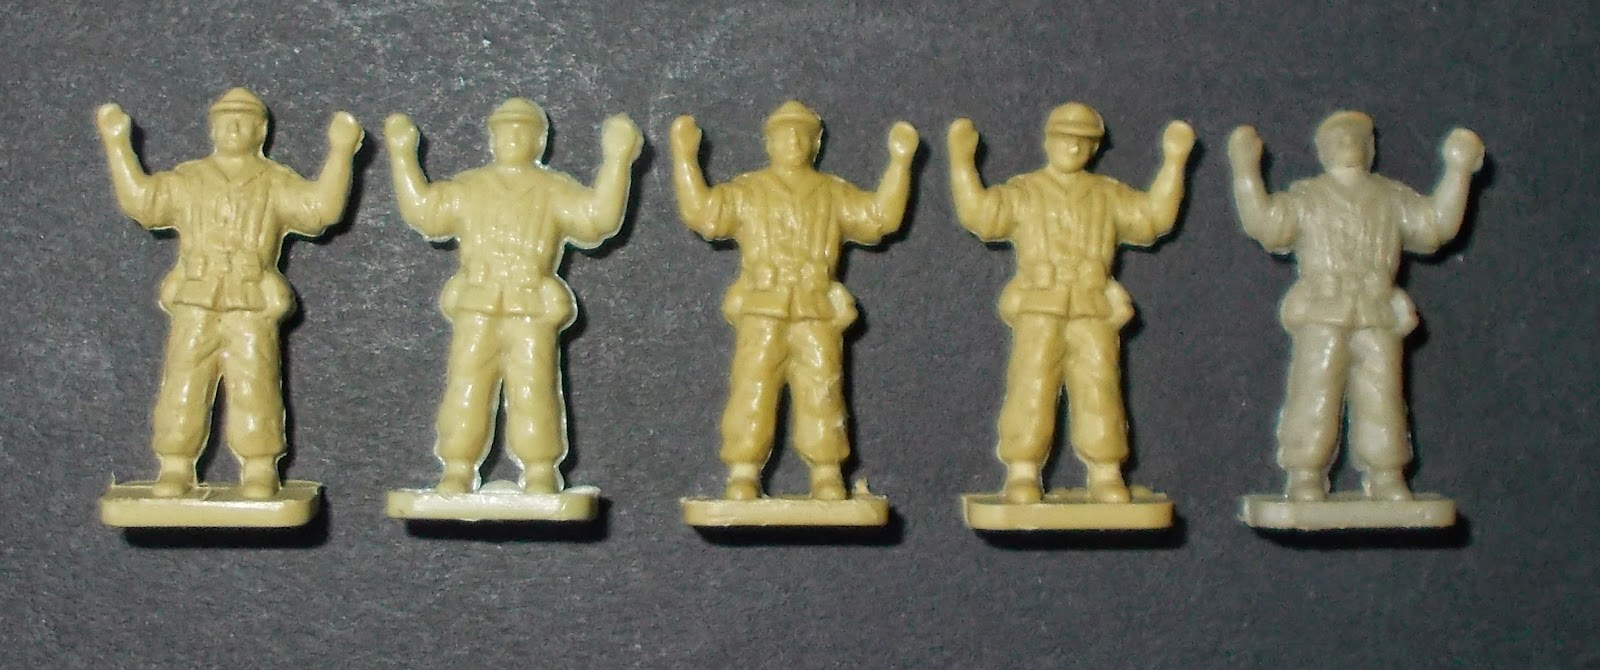 S11, 01711-6, Africa Korps, 1/76 scale, 1961 to 1972, 01711-6, 1973, Plasty, Germany, Kit Number 1005, 1960s, MPC, USA, 2-8001 El Alamein, 2-8054 Tank Battle at El Alamein, Early 1970s, Airfix Afrika Korps, 1/76th, MPC 2-8001 , MPC 2-8054, Tank Battle at El Alamein, El Alamein, 1962, 46 figures, 20 poses, 01711-6, 9 01711, 01711, A01711, First Type, 1st Type, Type One, Type 1, Type I, Germen, Deutsches, DAK,